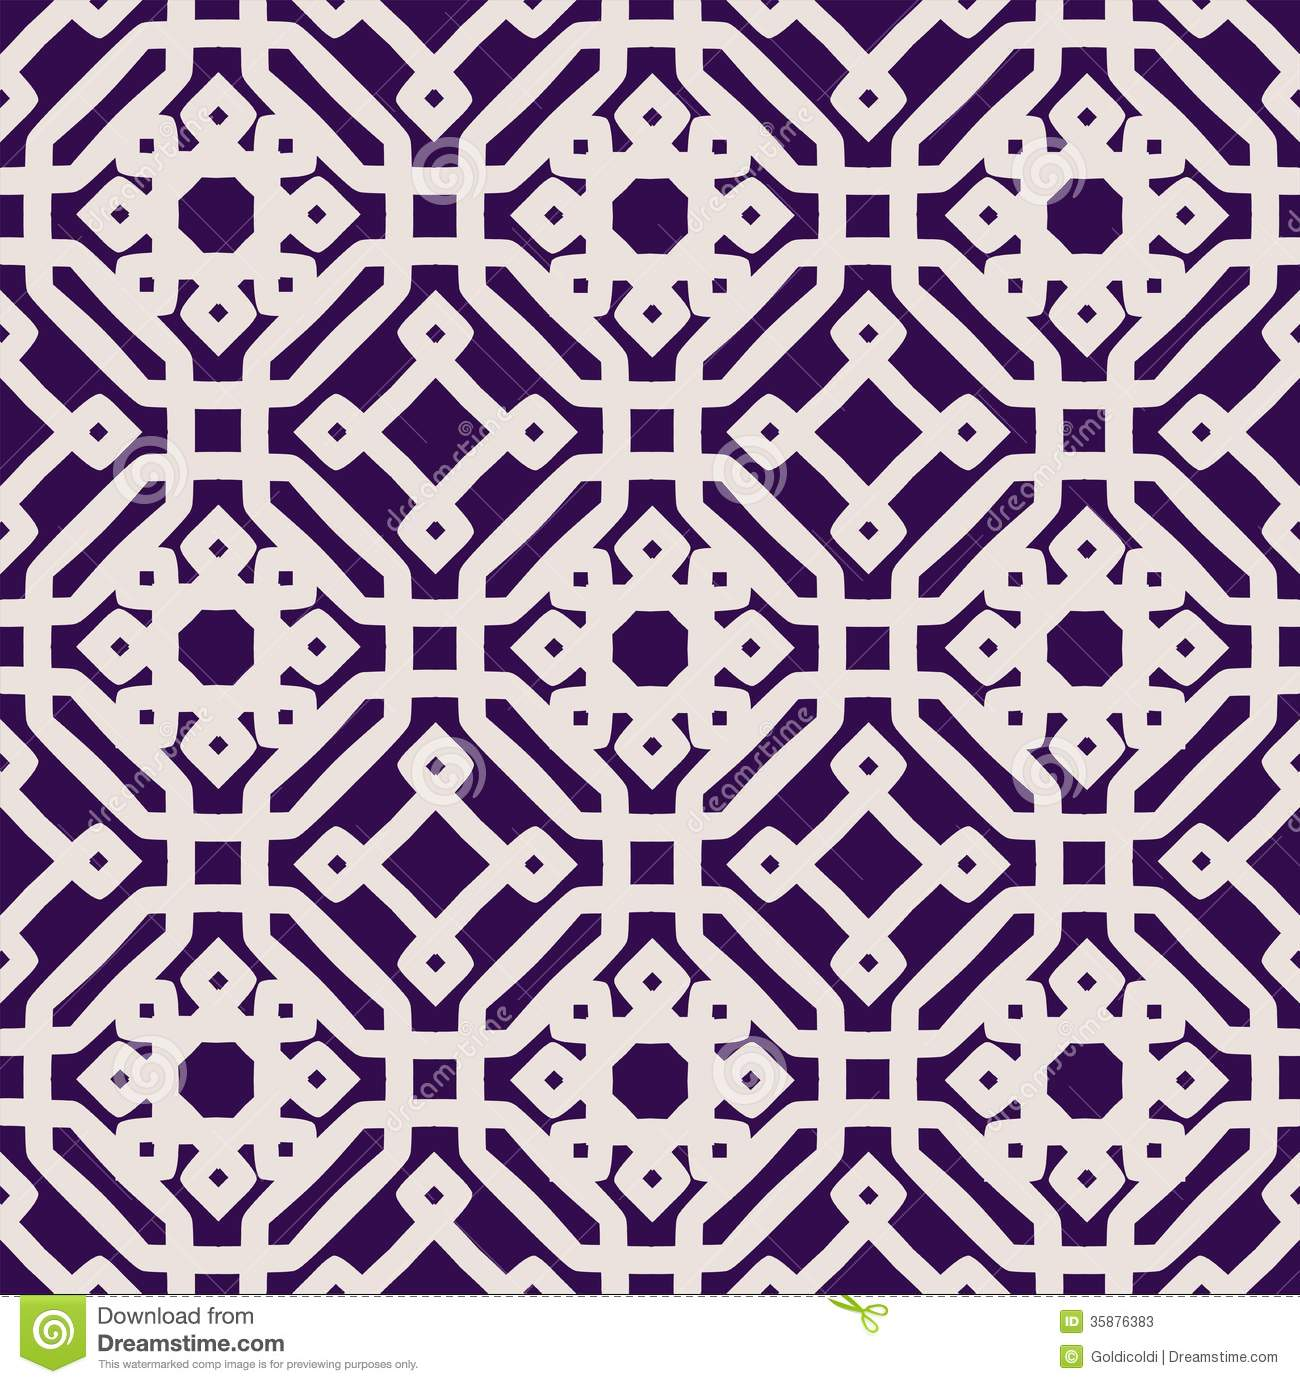 Simple square patterns